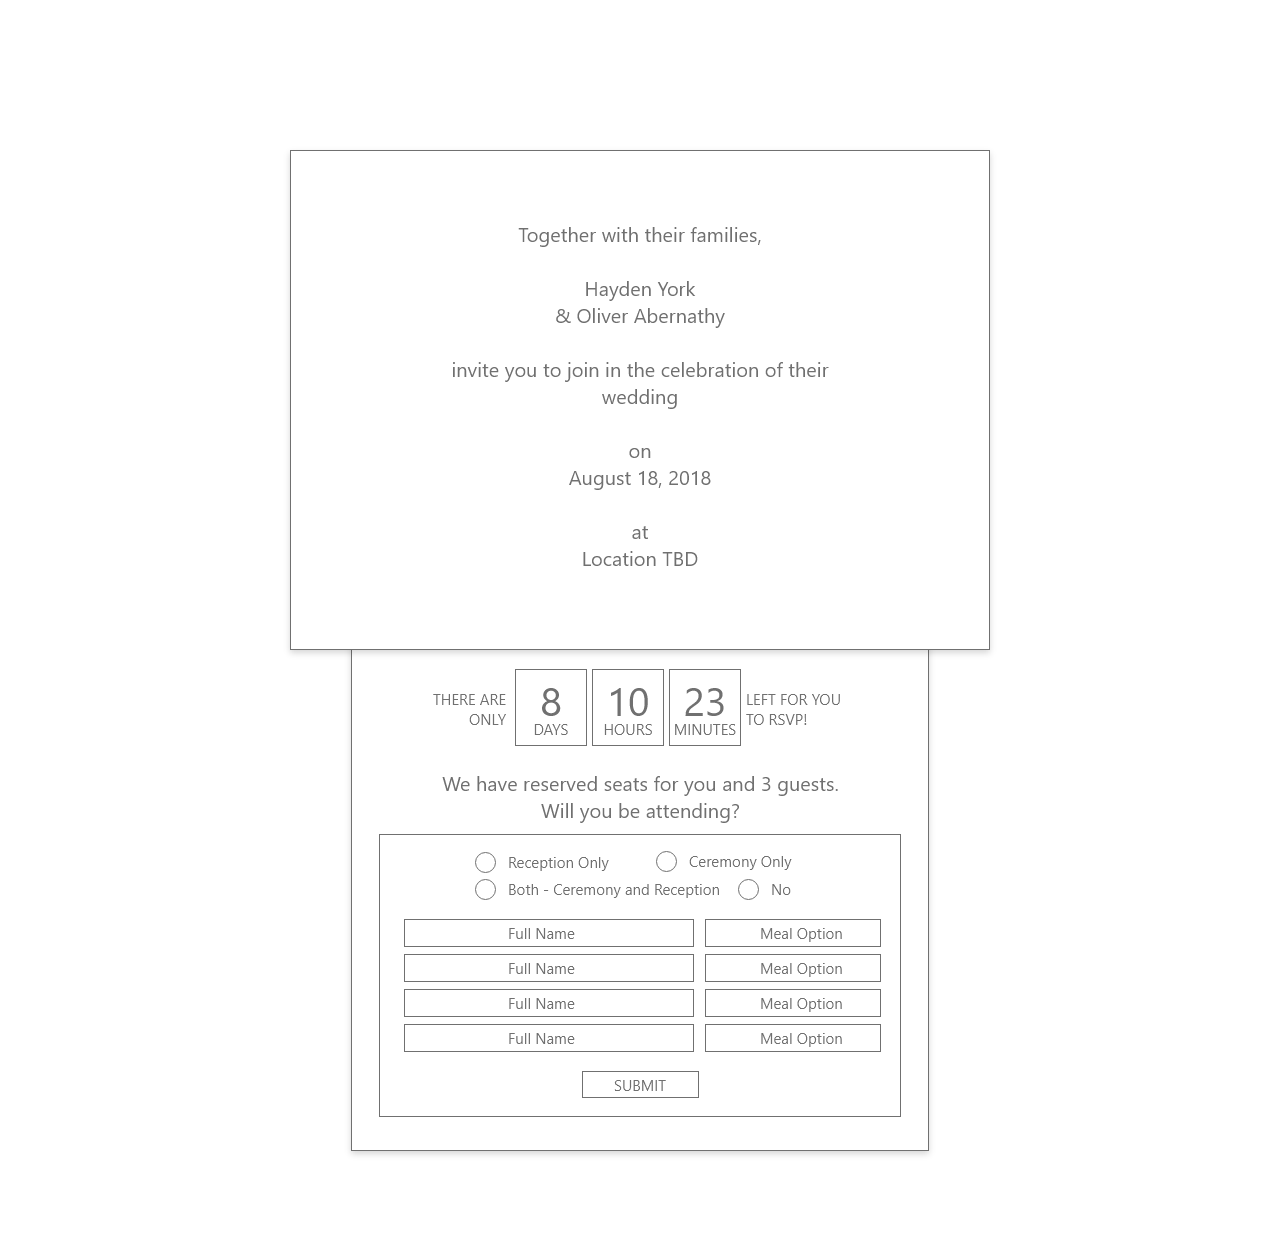 Wedding Invitation Wireframe